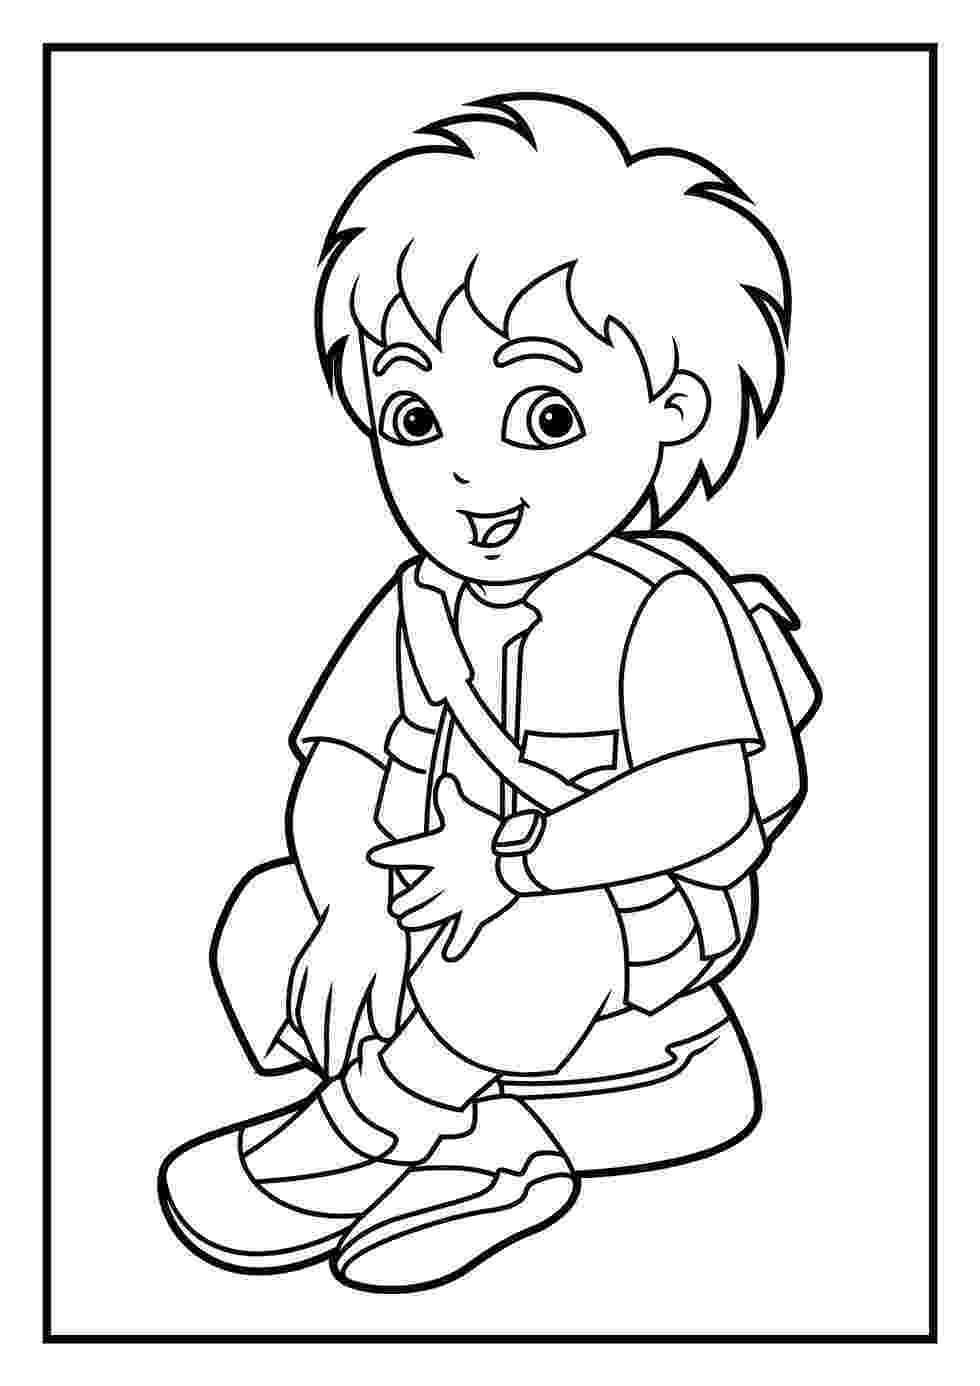 coloring pages for dora coloring pages diego coloring pages pages for coloring